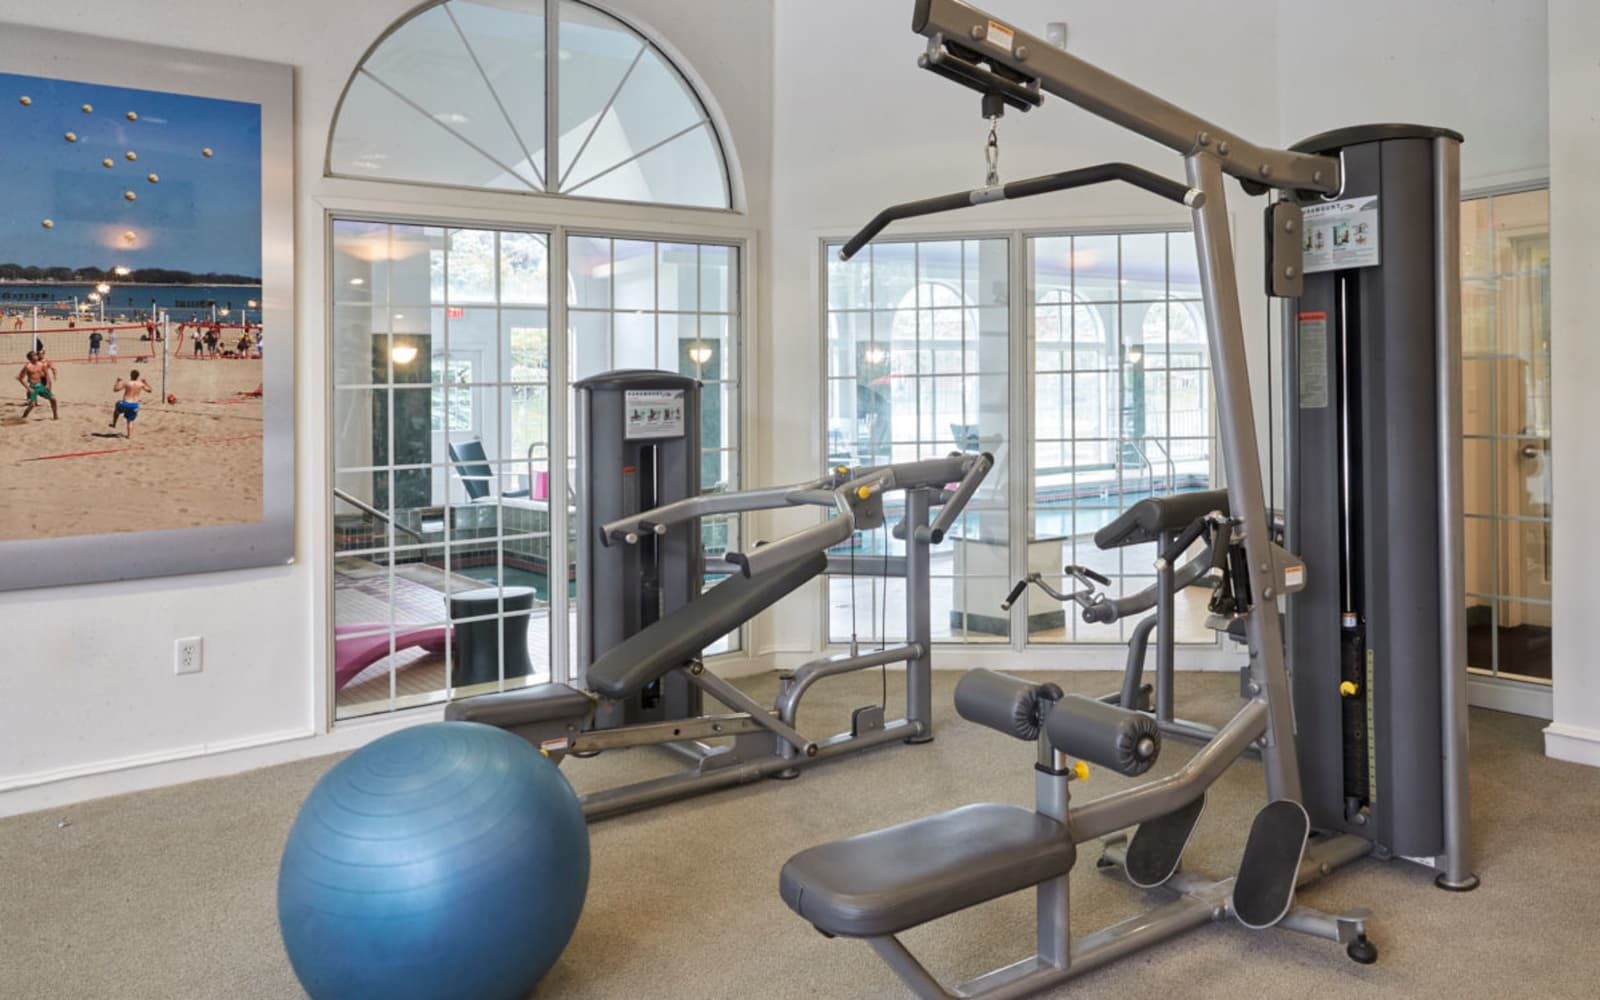 Exercise equipment at Citation Club in Farmington Hills, Michigan